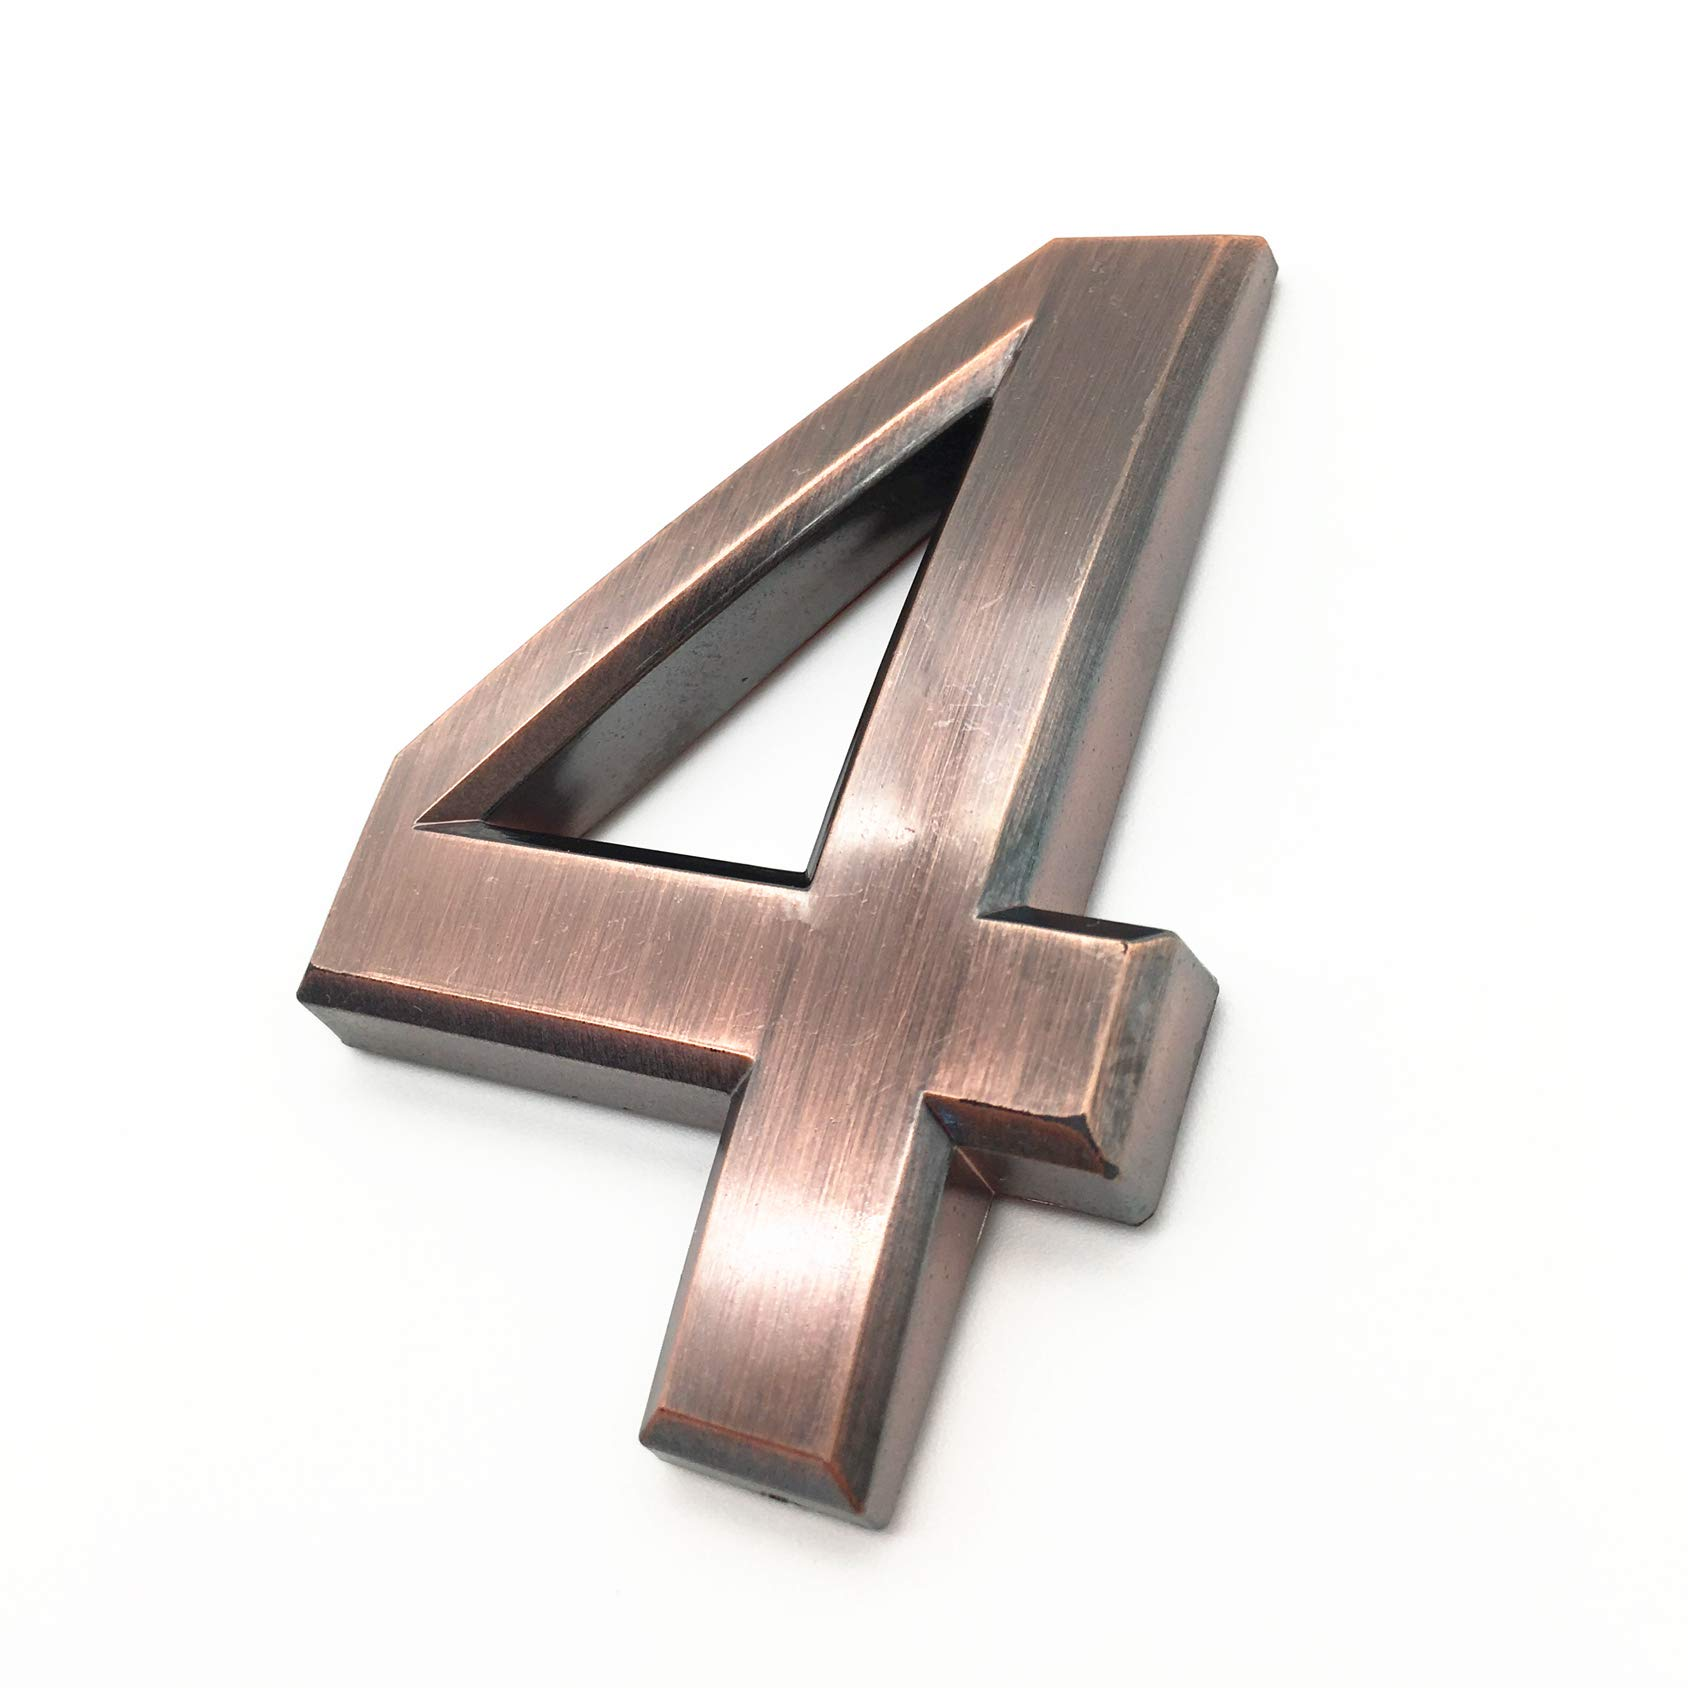 2, Bronze by Hopewan. Bronze//Silver 4 Inch Mailbox Numbers 2, Door Address Number Stickers 0-9 for House//Apartment//Floor